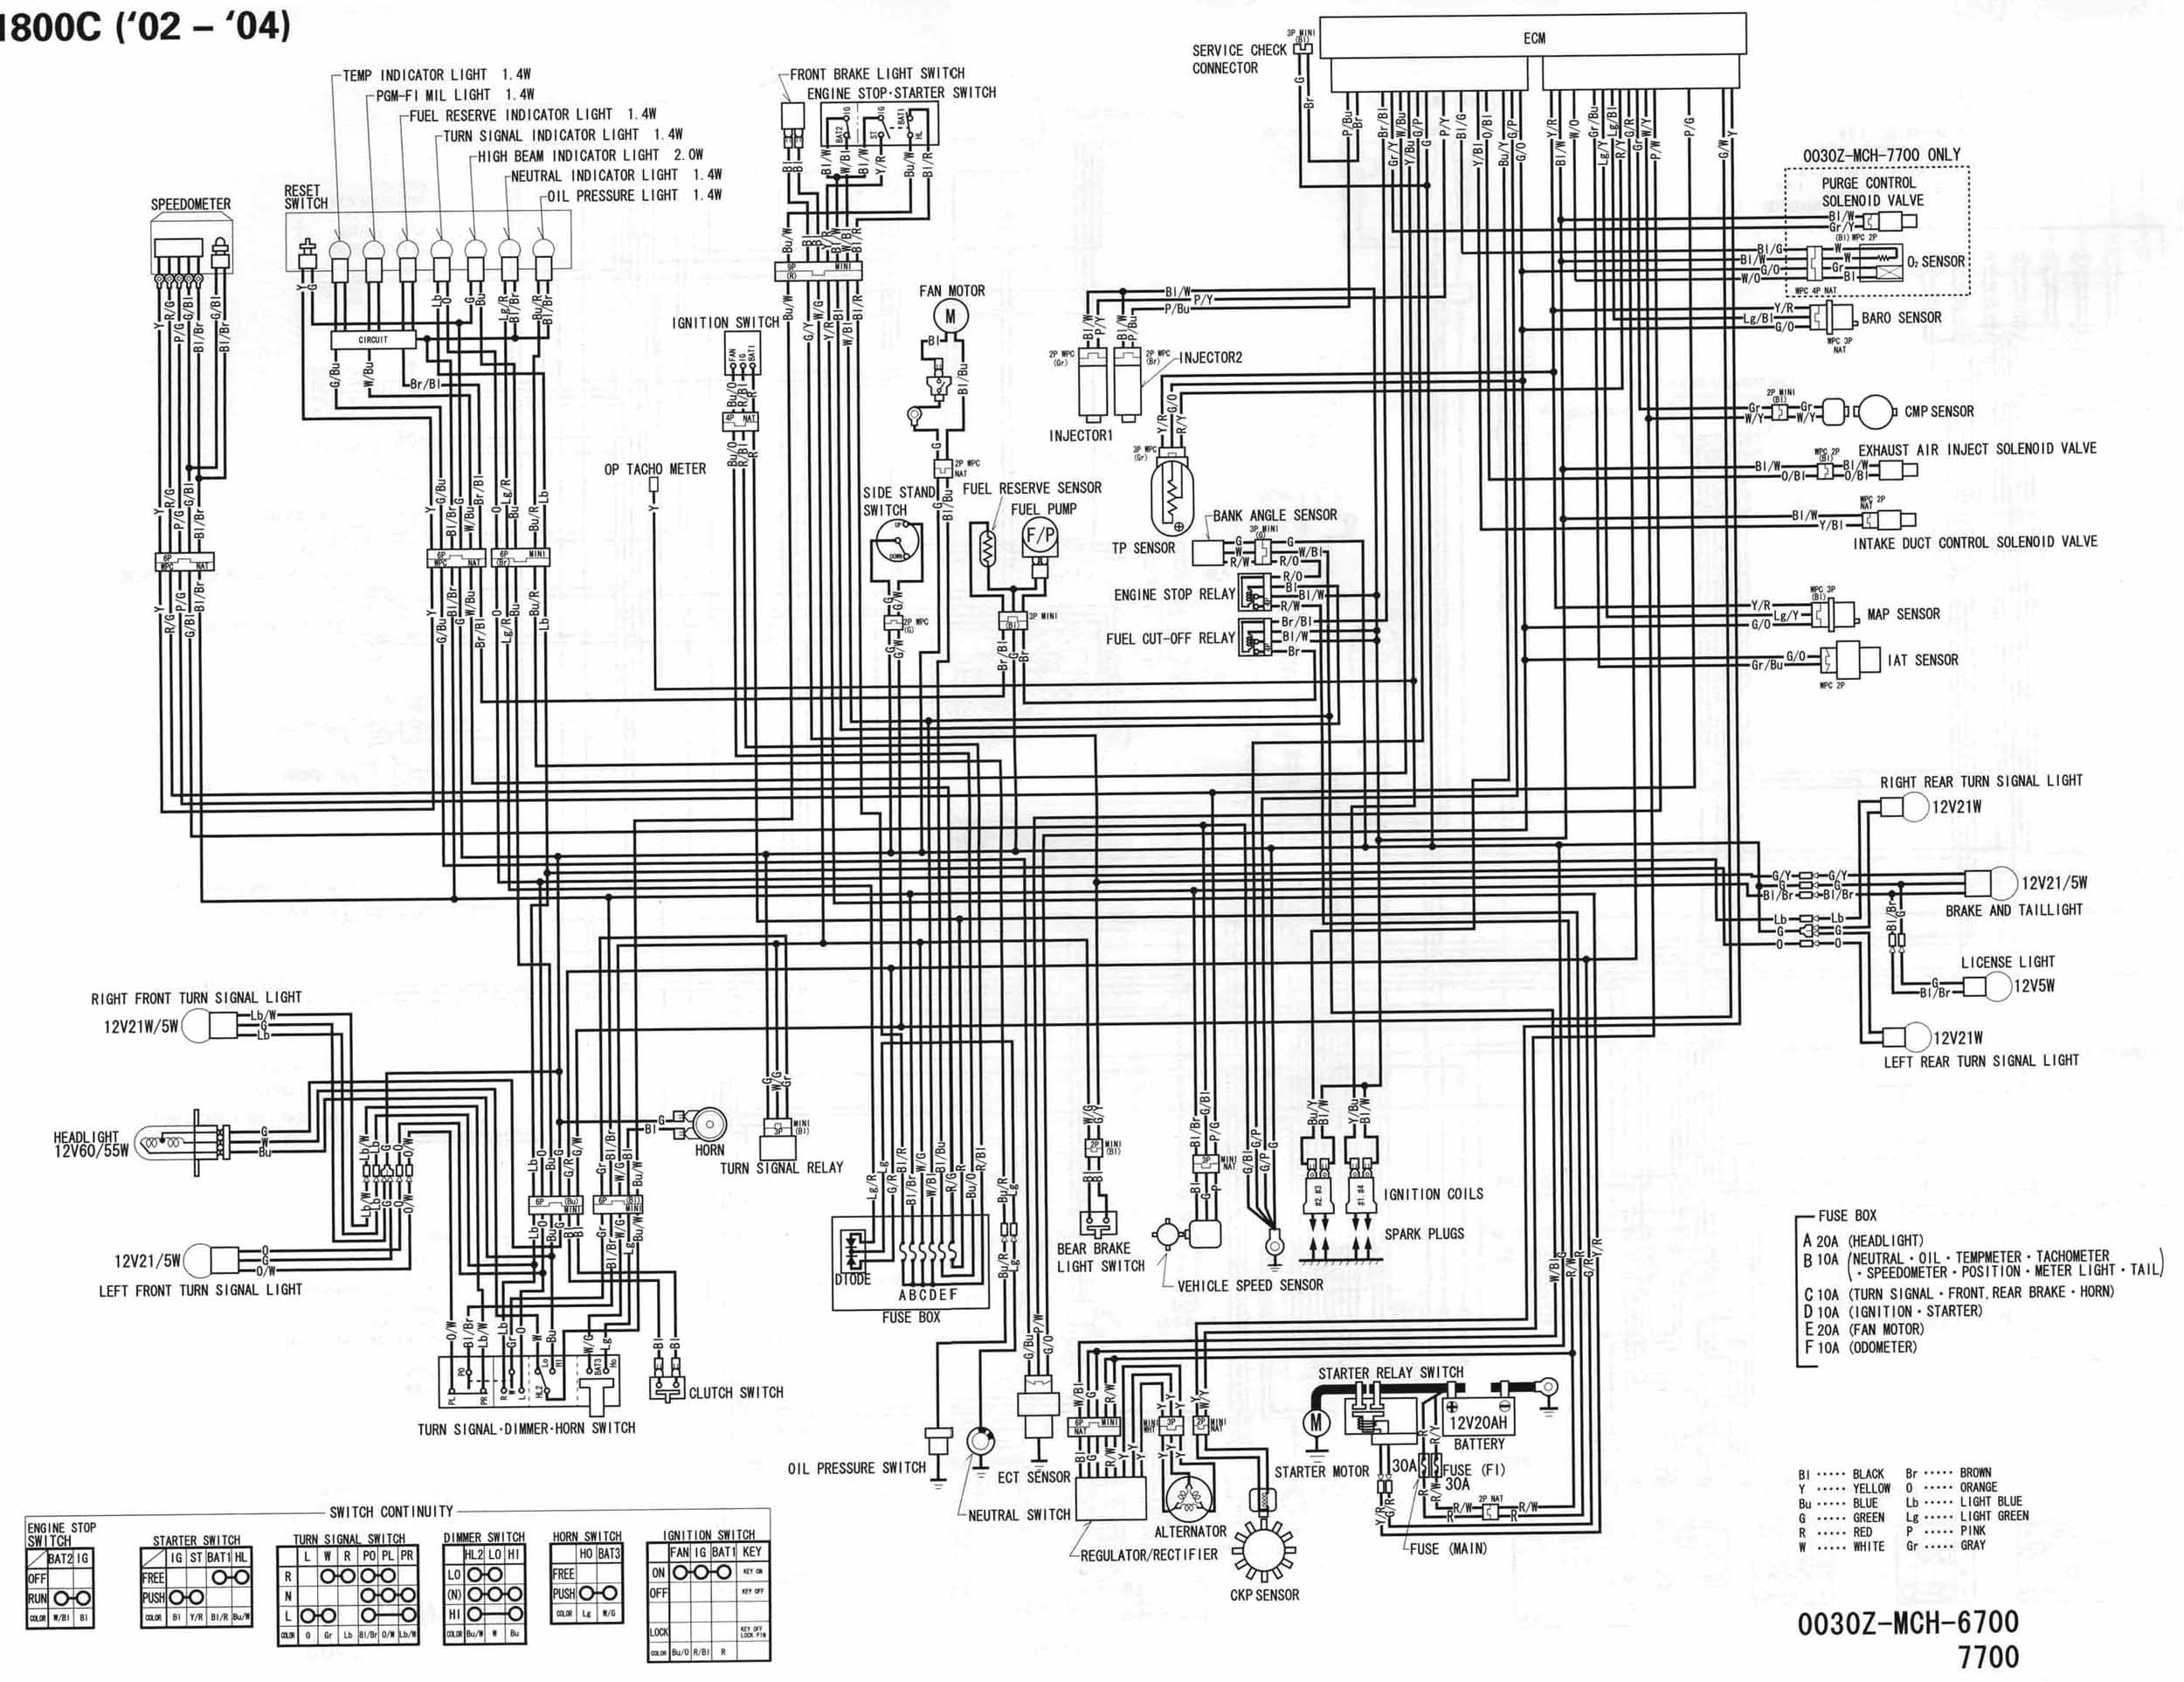 02 04_VTX1800_C_schematic motorcycle wire schematics bareass choppers motorcycle tech pages 2003 Honda Element Engine Harness at virtualis.co